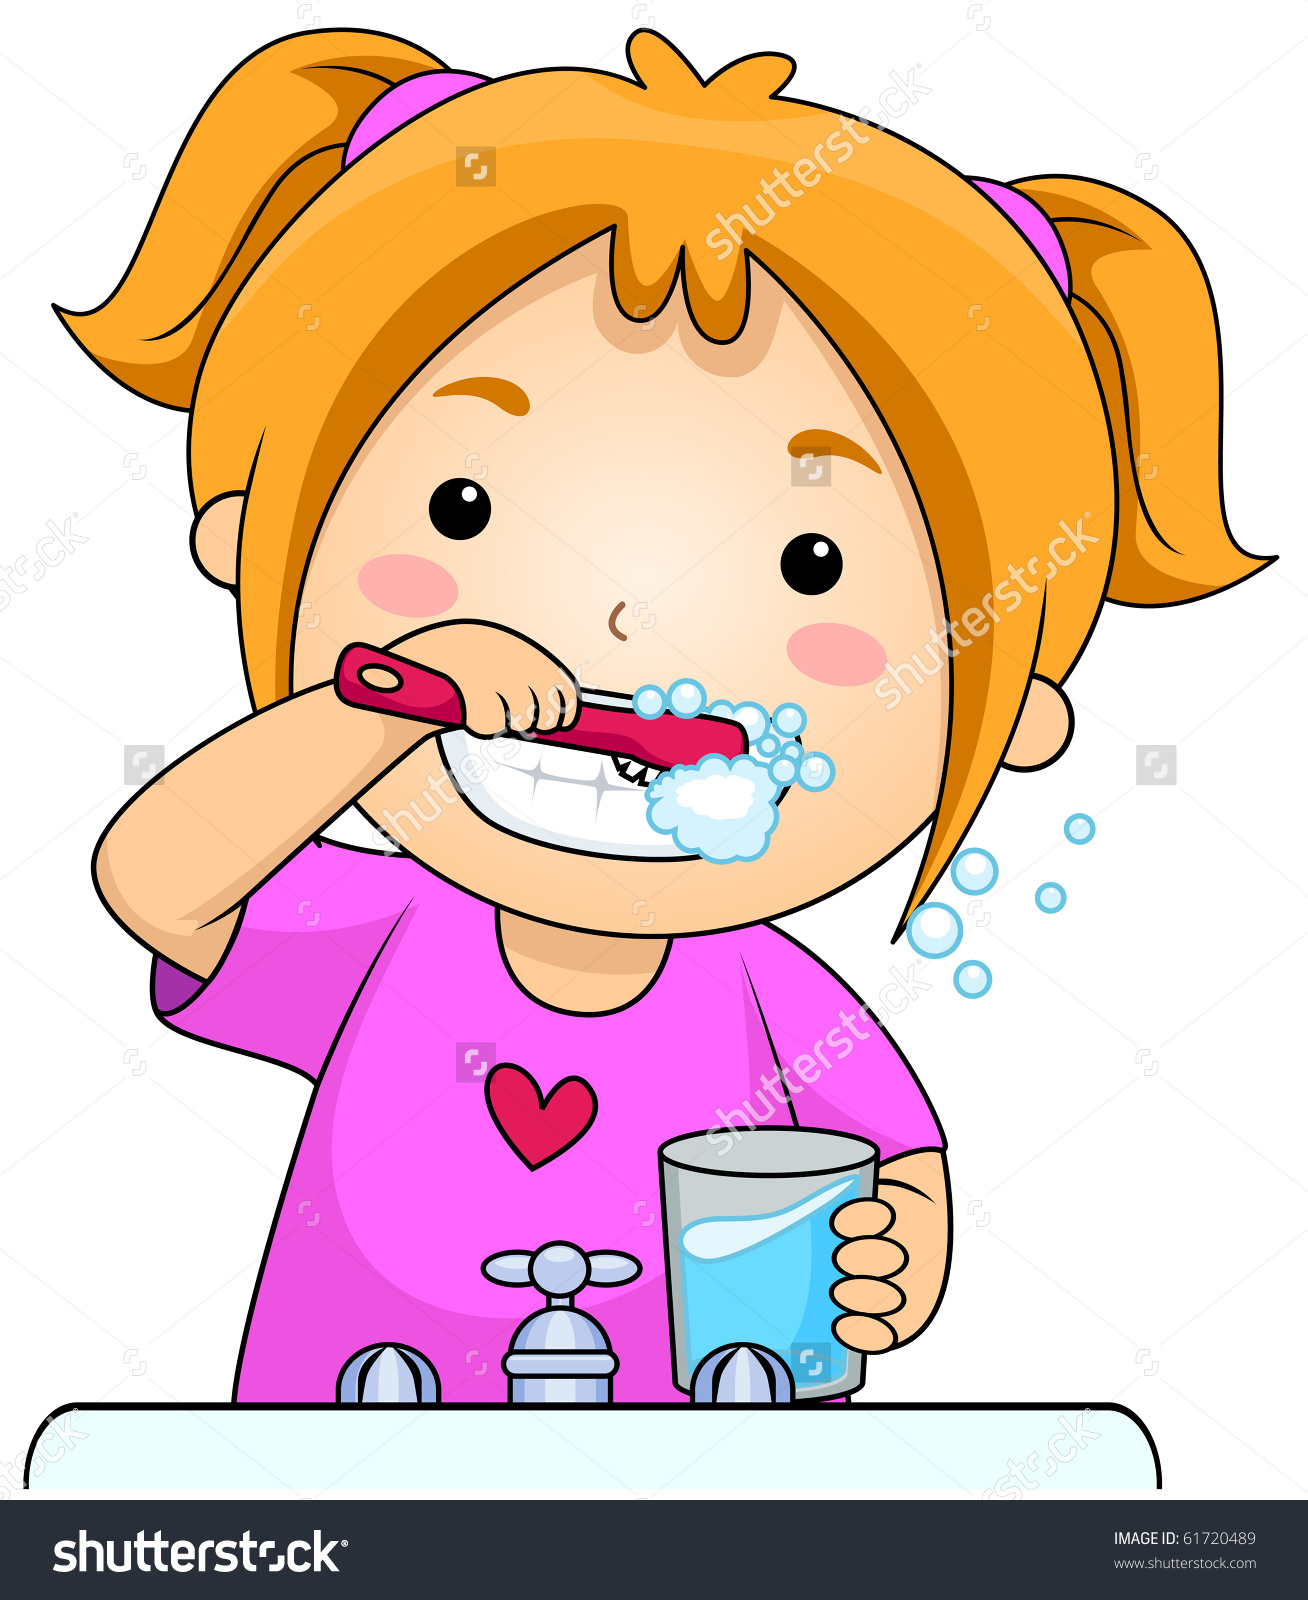 Dental Girl Brushing Teeth 1030 Classroo-Dental Girl Brushing Teeth 1030 Classroom Clipart. Save to a lightbox-4